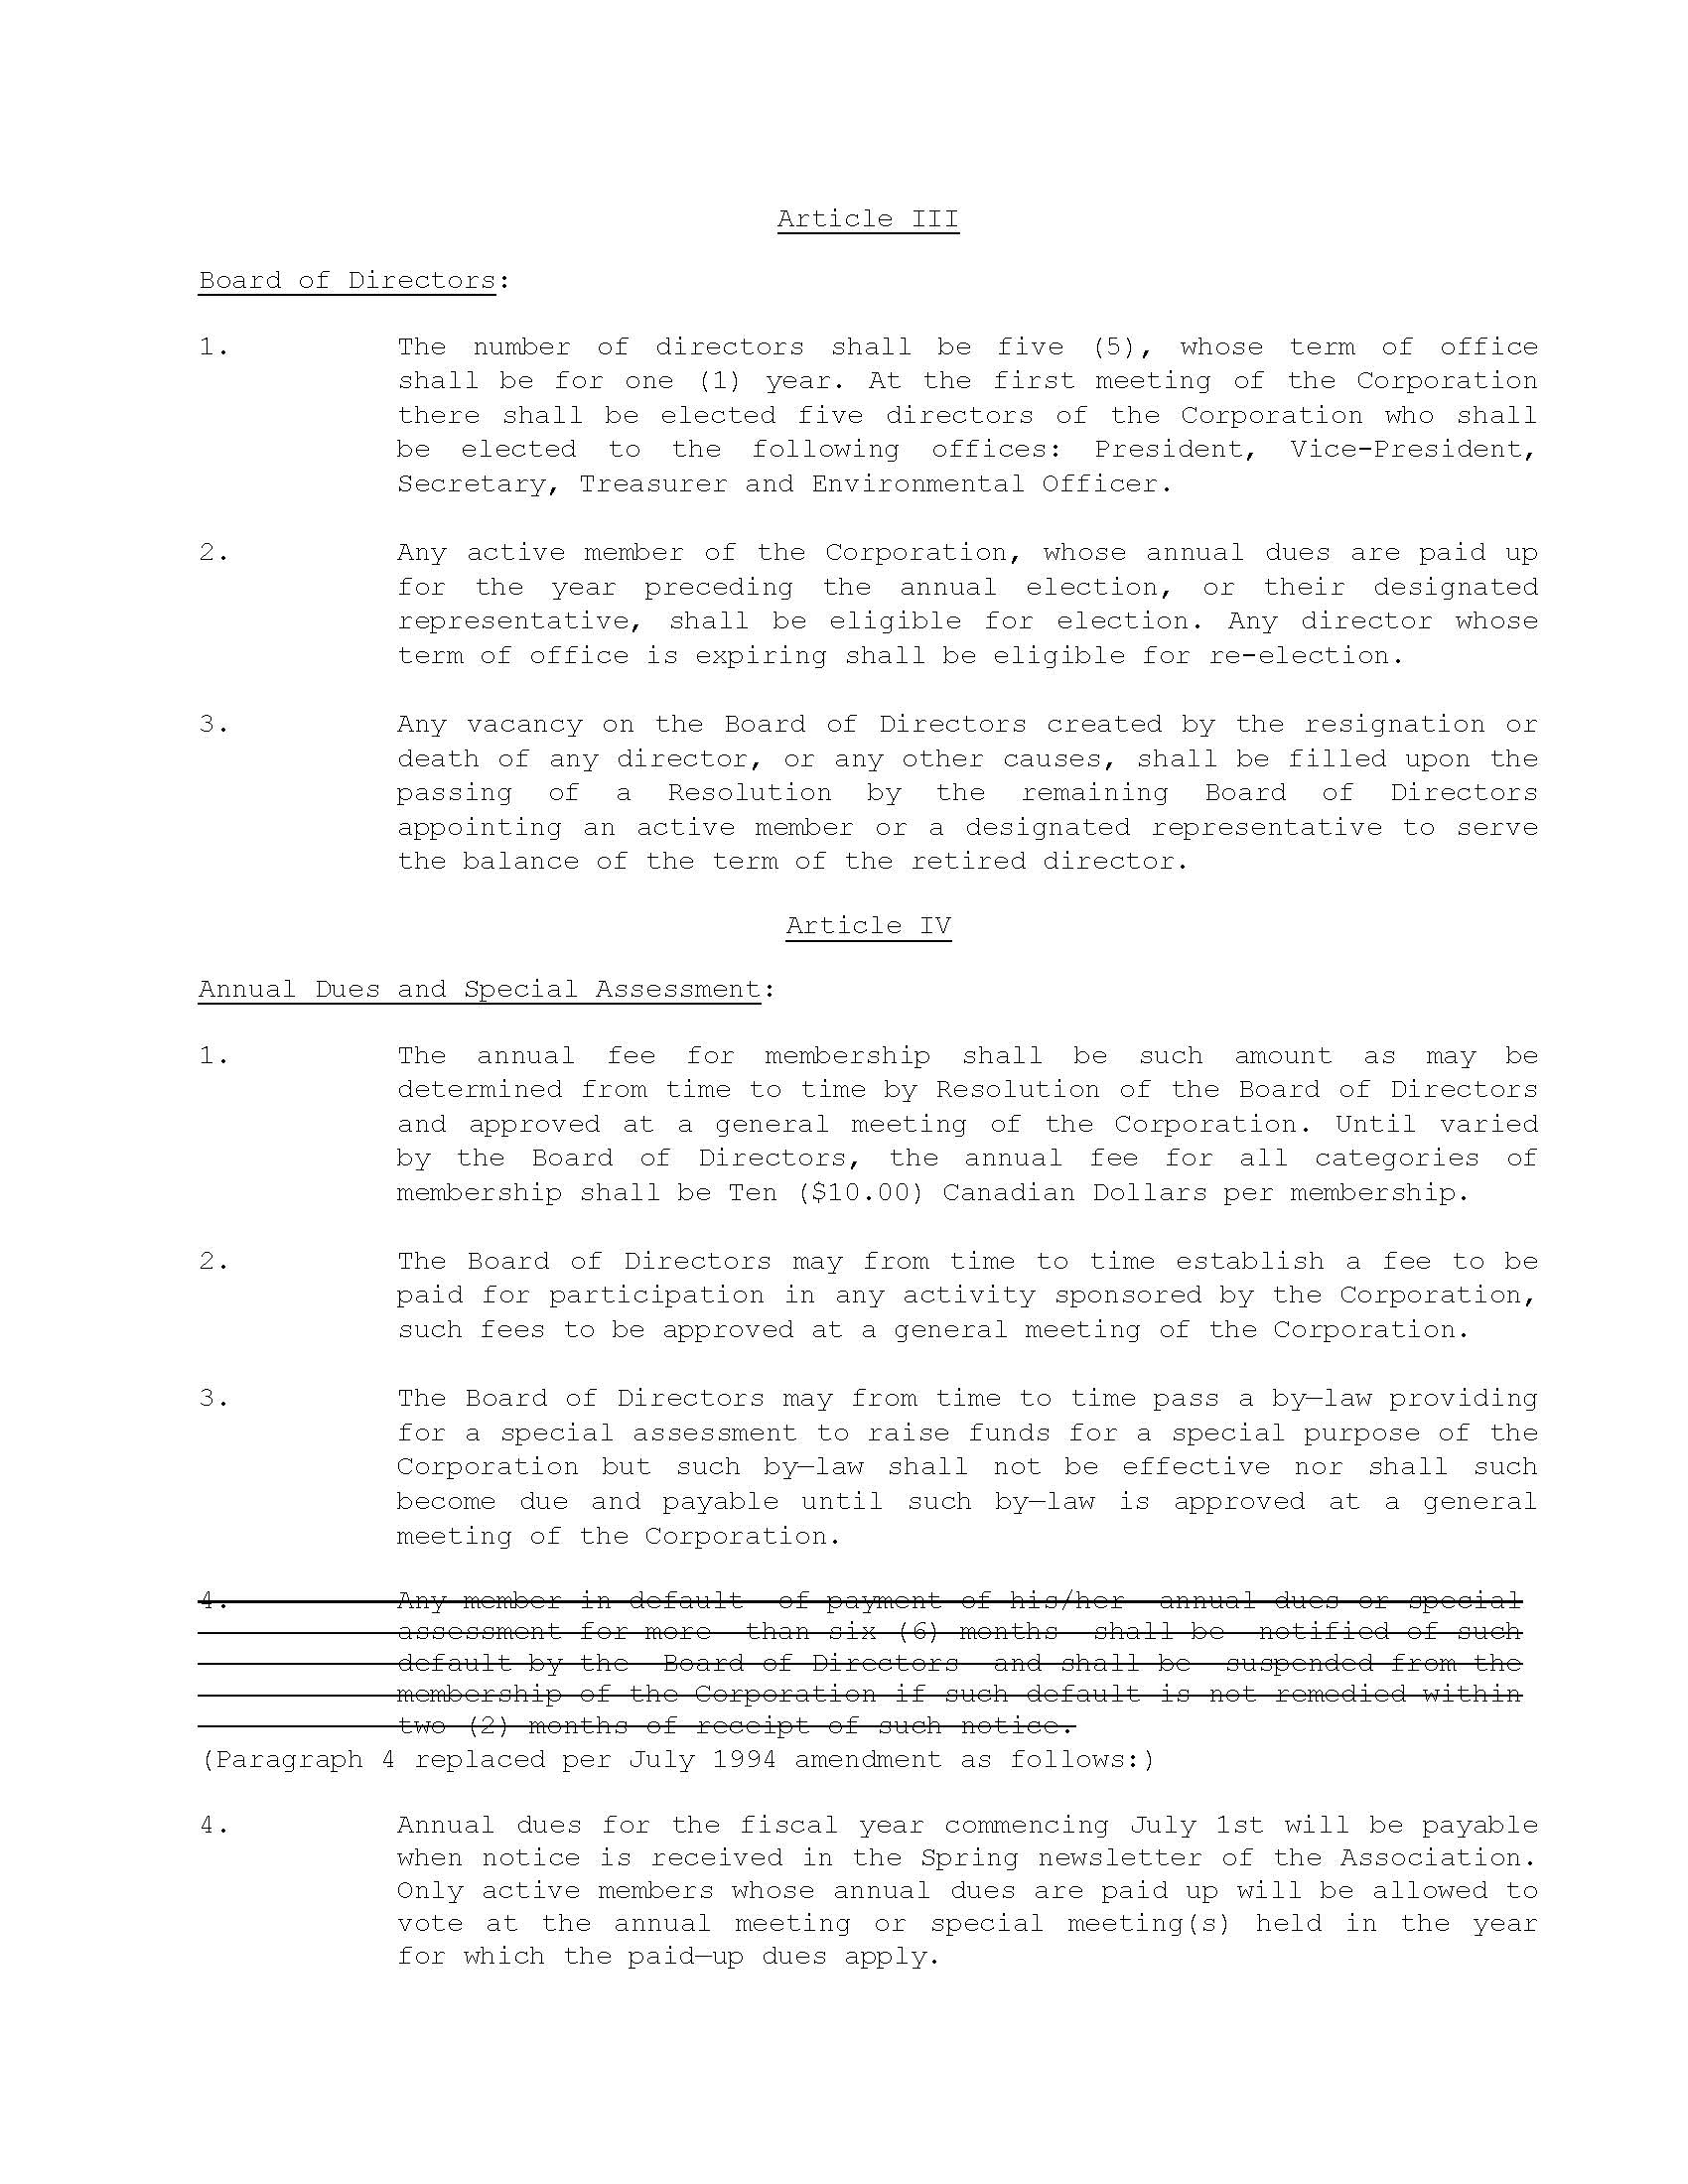 CottagersAssociationBy-Laws_Page_3.jpg